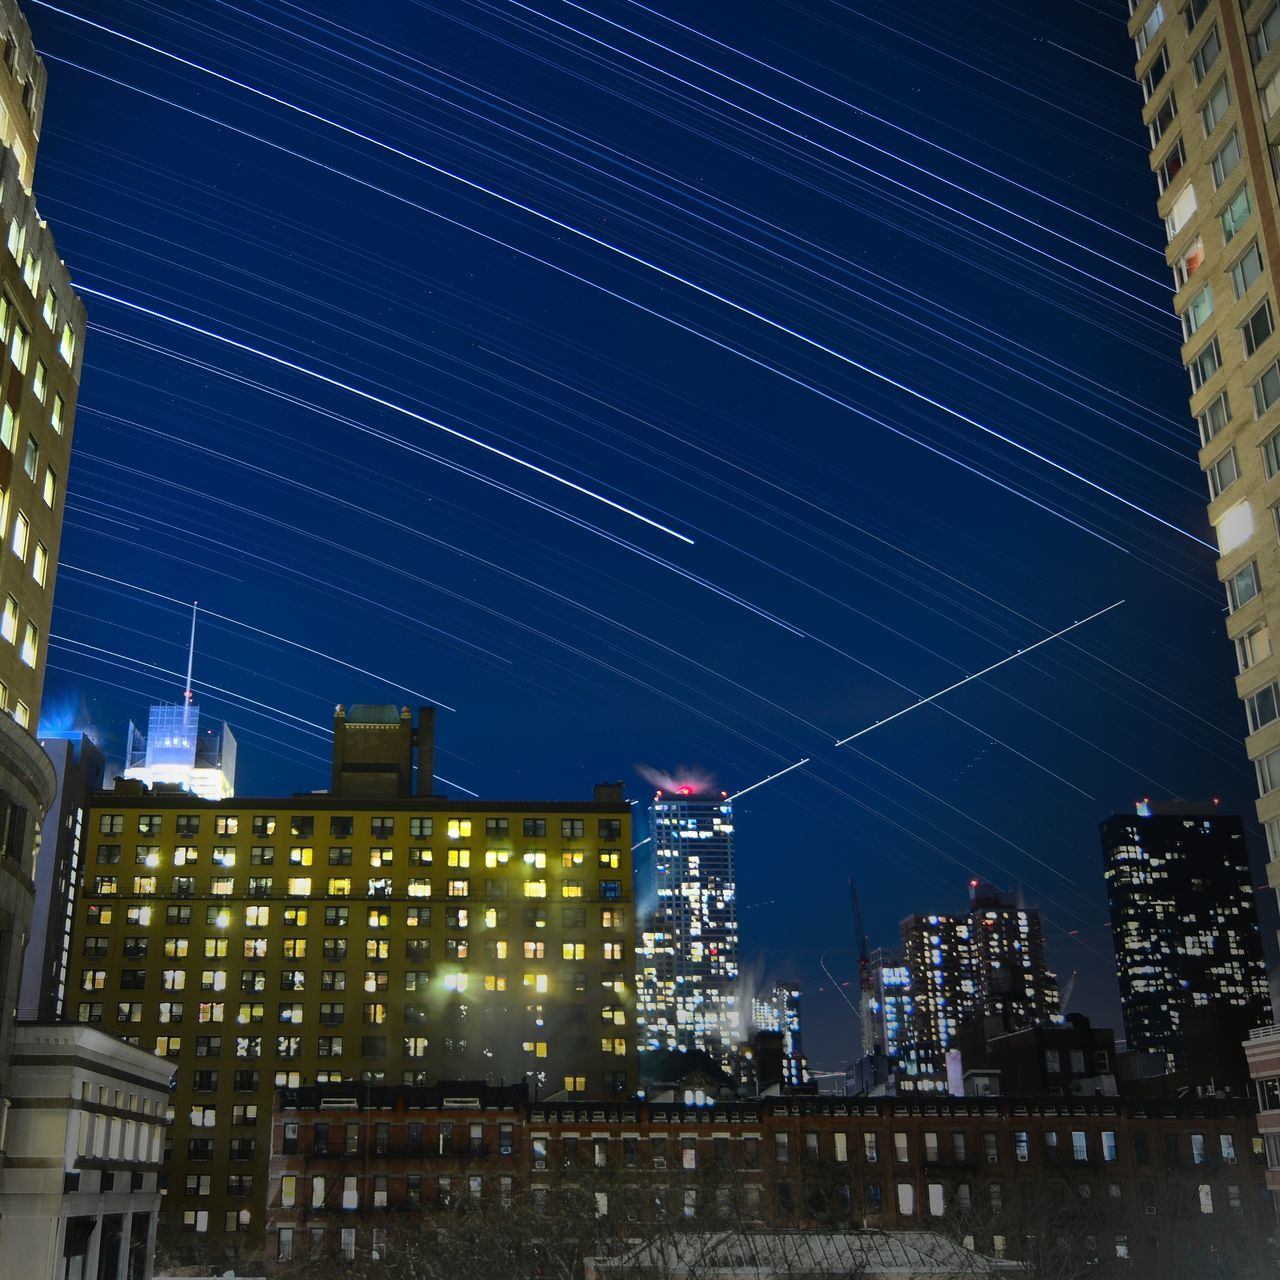 The stars Night City Sky Milky Way Star - Space Space Galaxy Astronomy Cityscape Startrial The City Light EyeEmNewHere